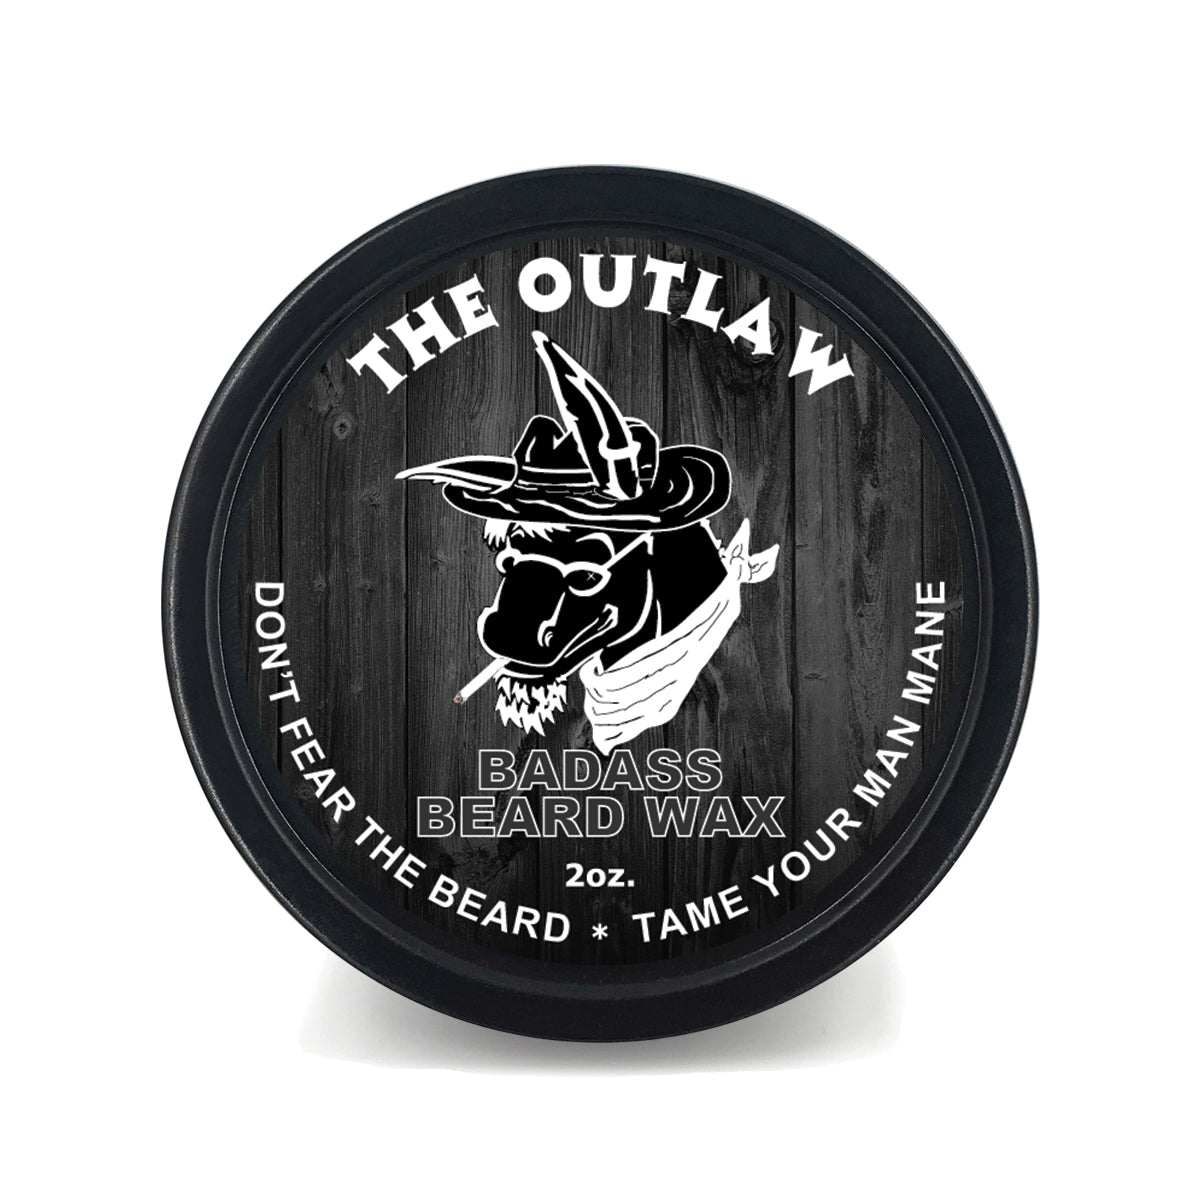 Badass Beard Wax - The Outlaw